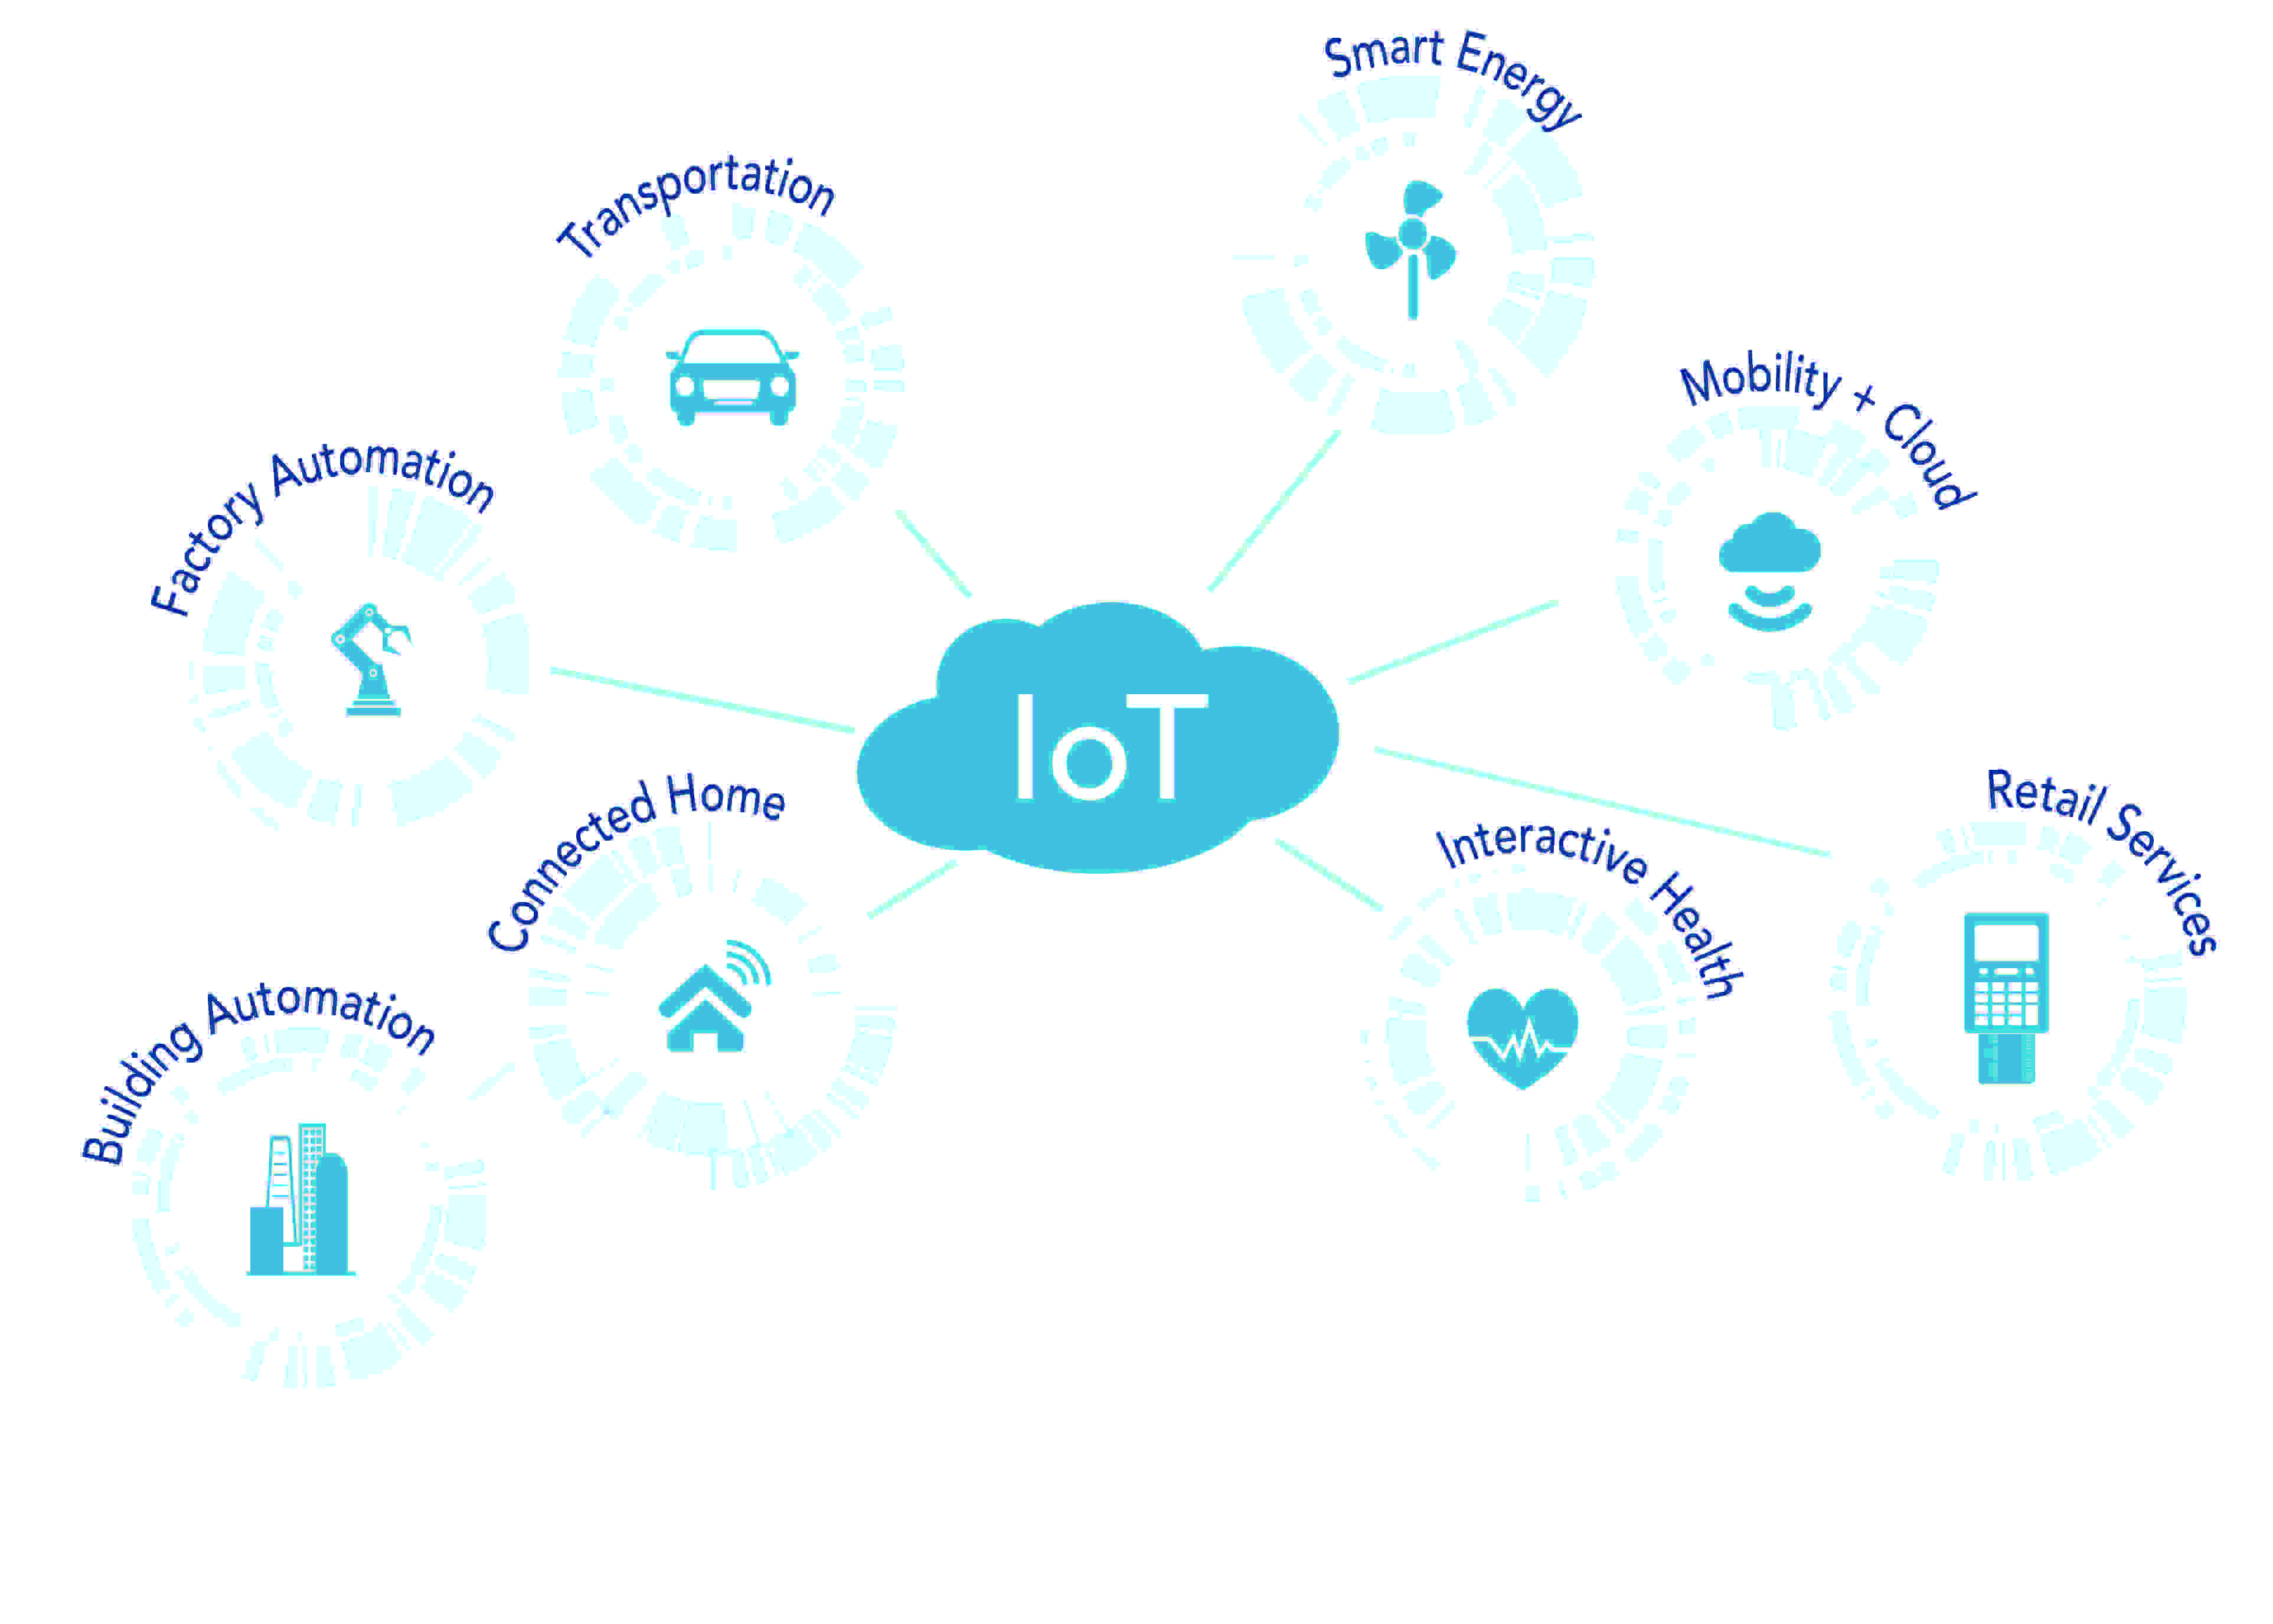 IoT Connectivity Creates New Capabilities For Smart Cities